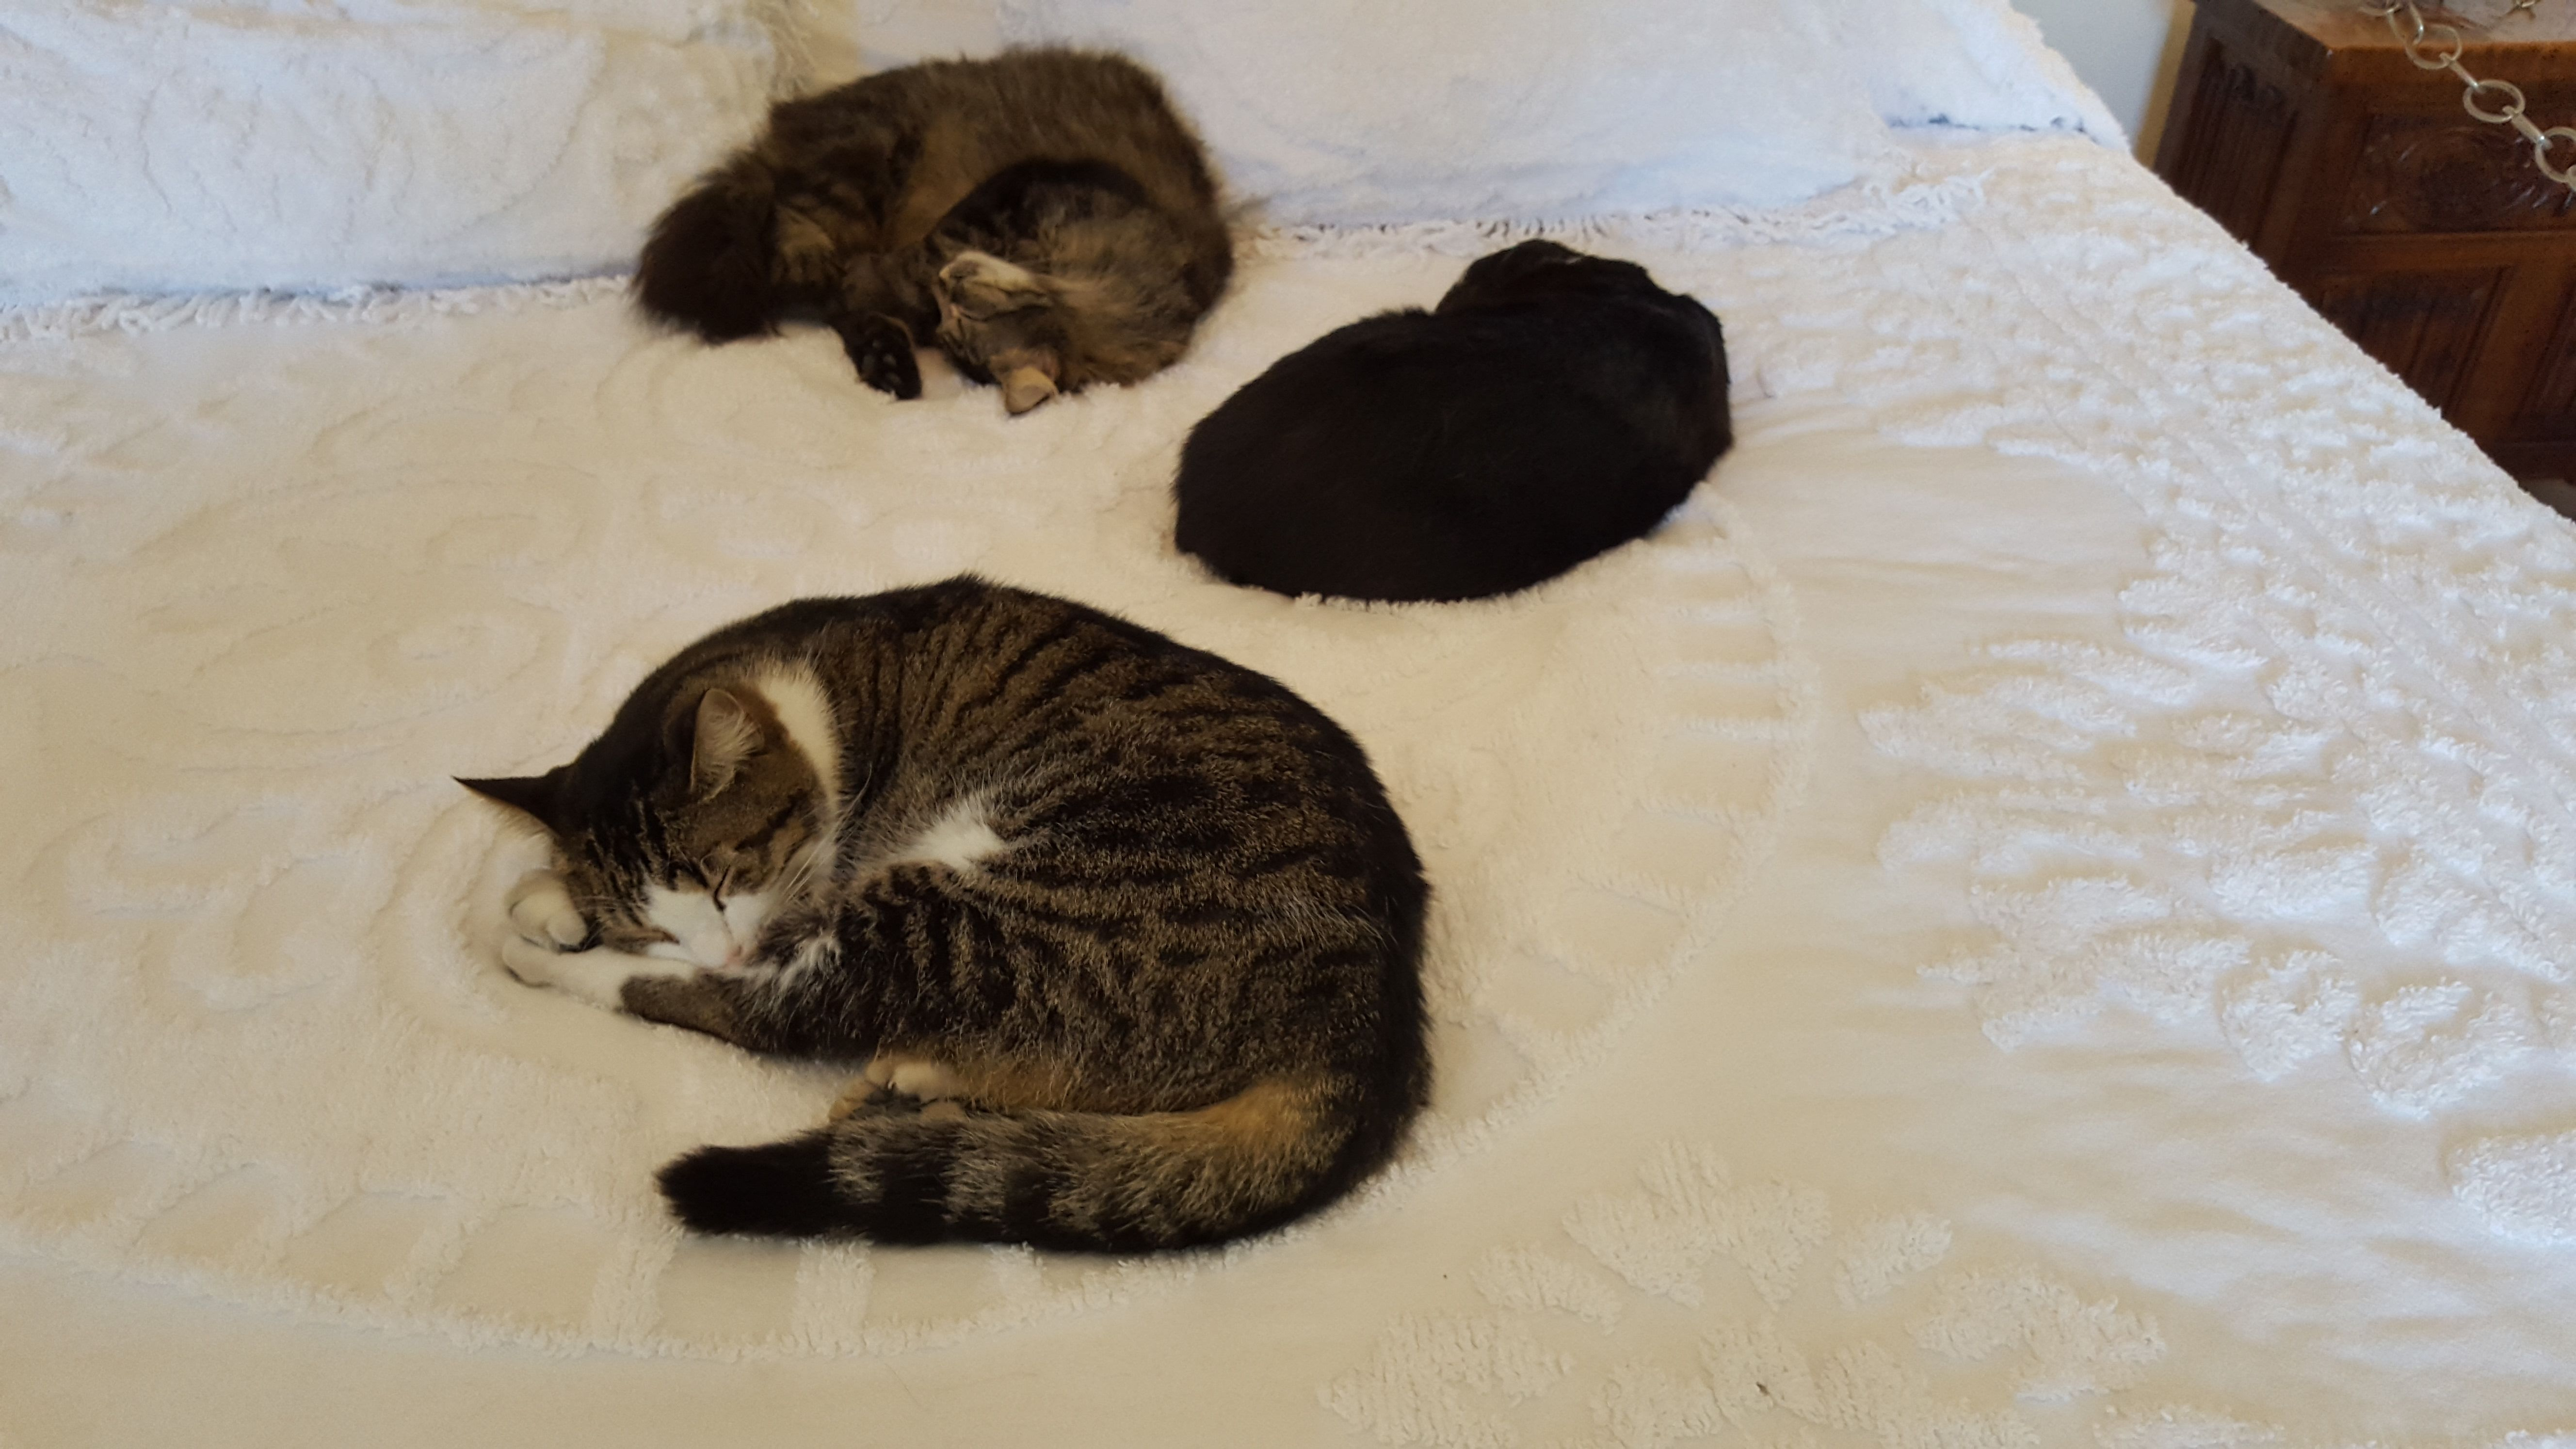 Ernest Hemingway House cats (xpost from r/cats)